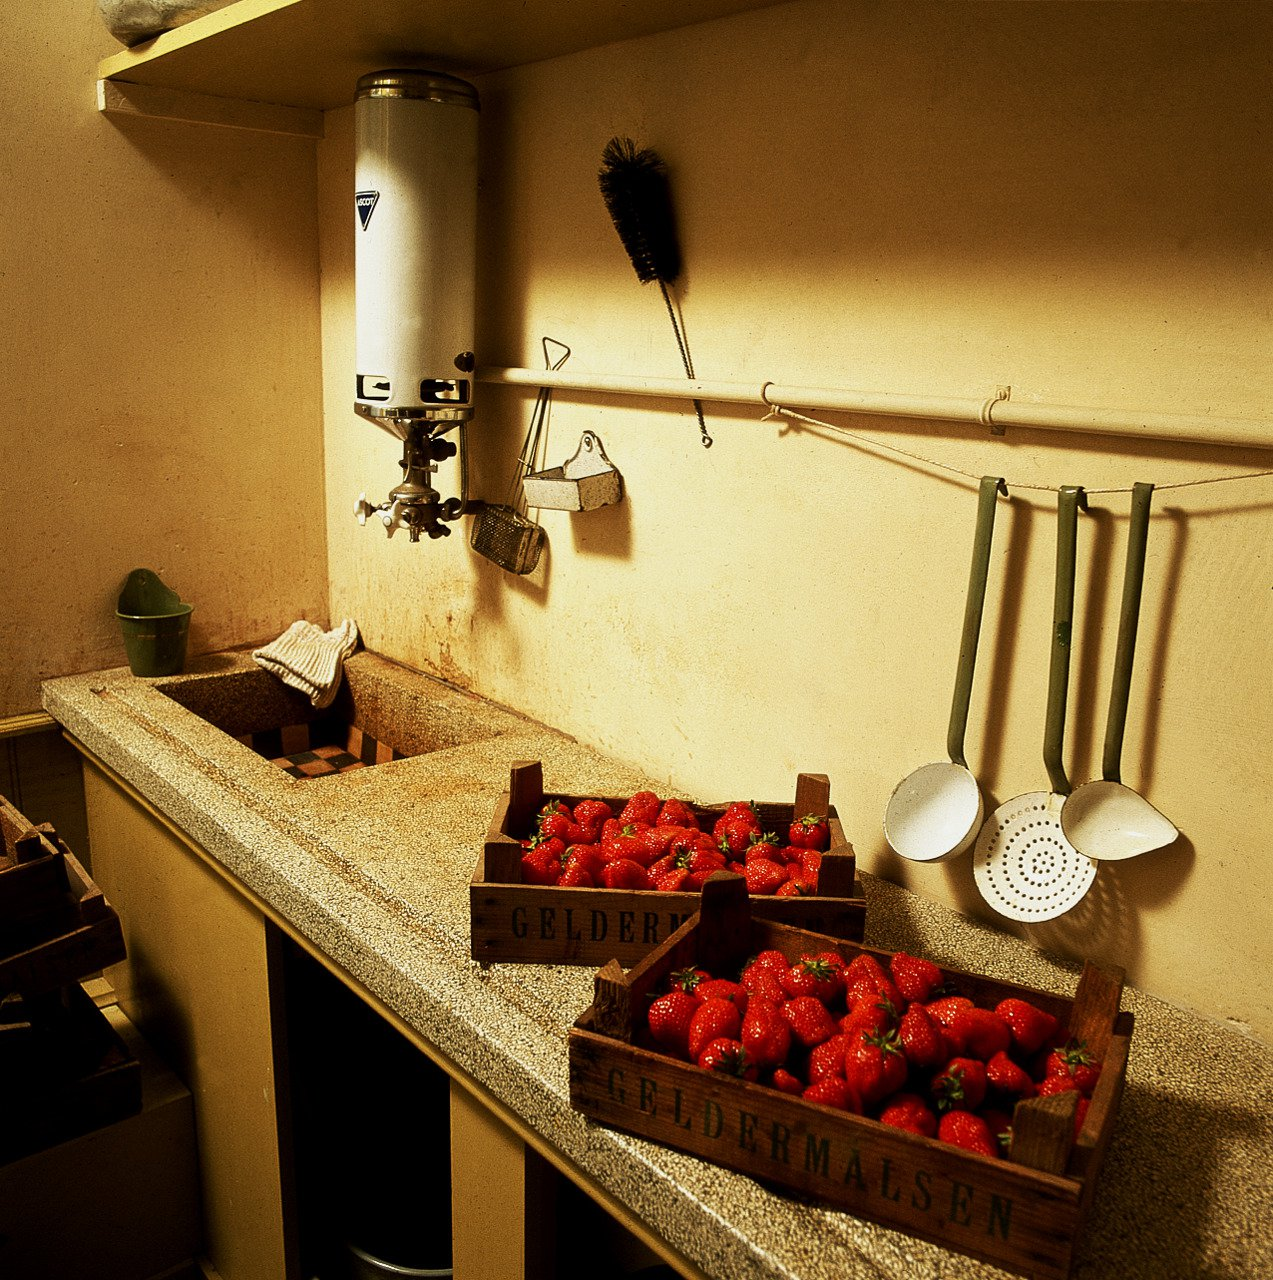 Strawberries on the office kitchen worktop, reconstruction (1999).